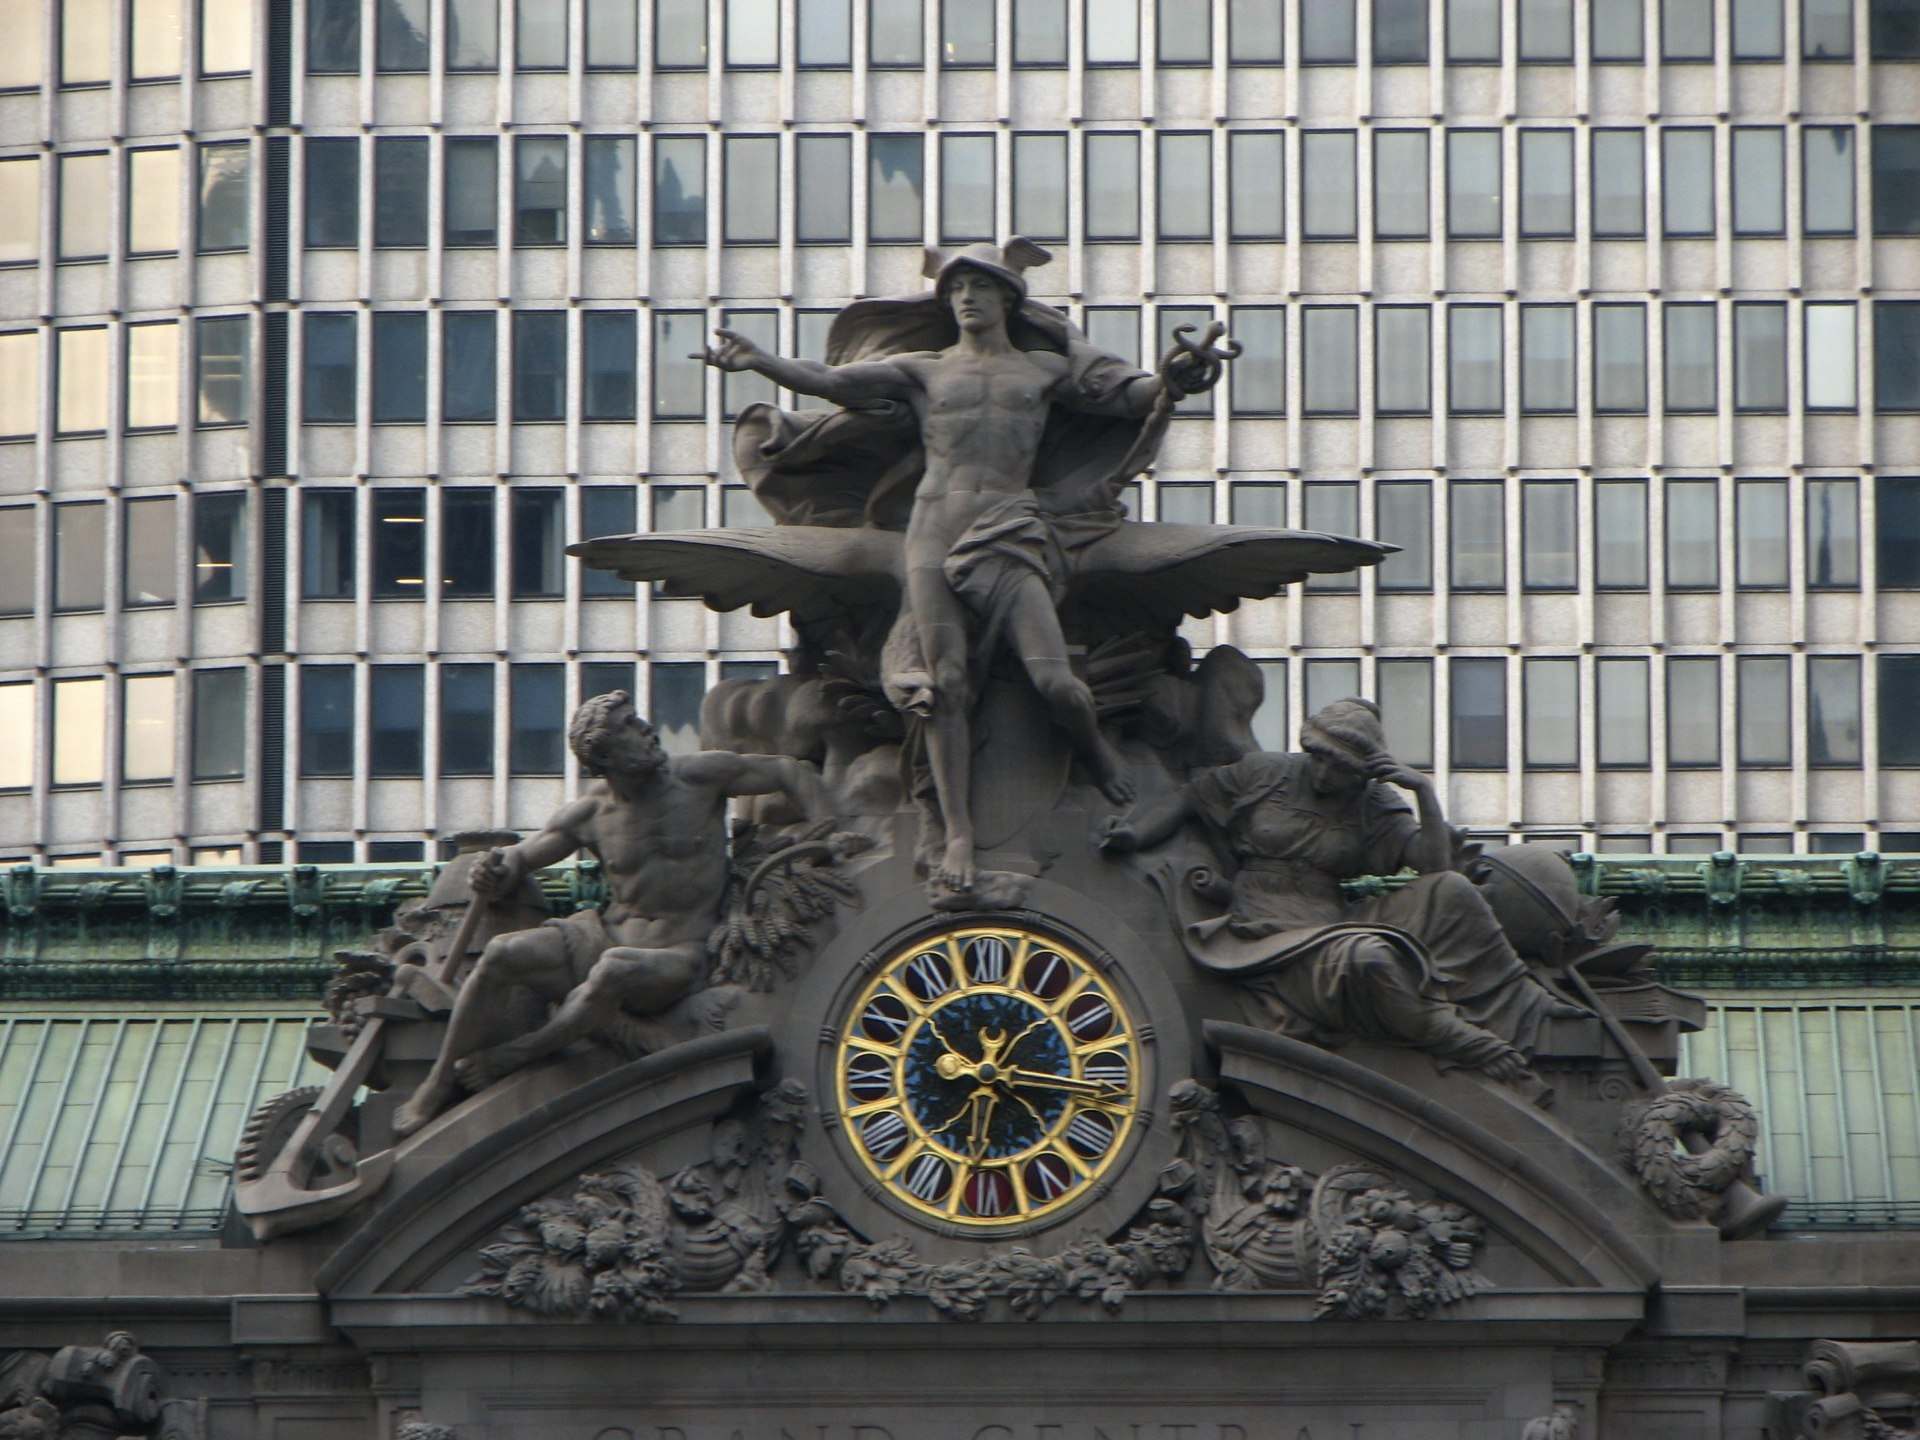 hermes statue grand central - HD1920×1440